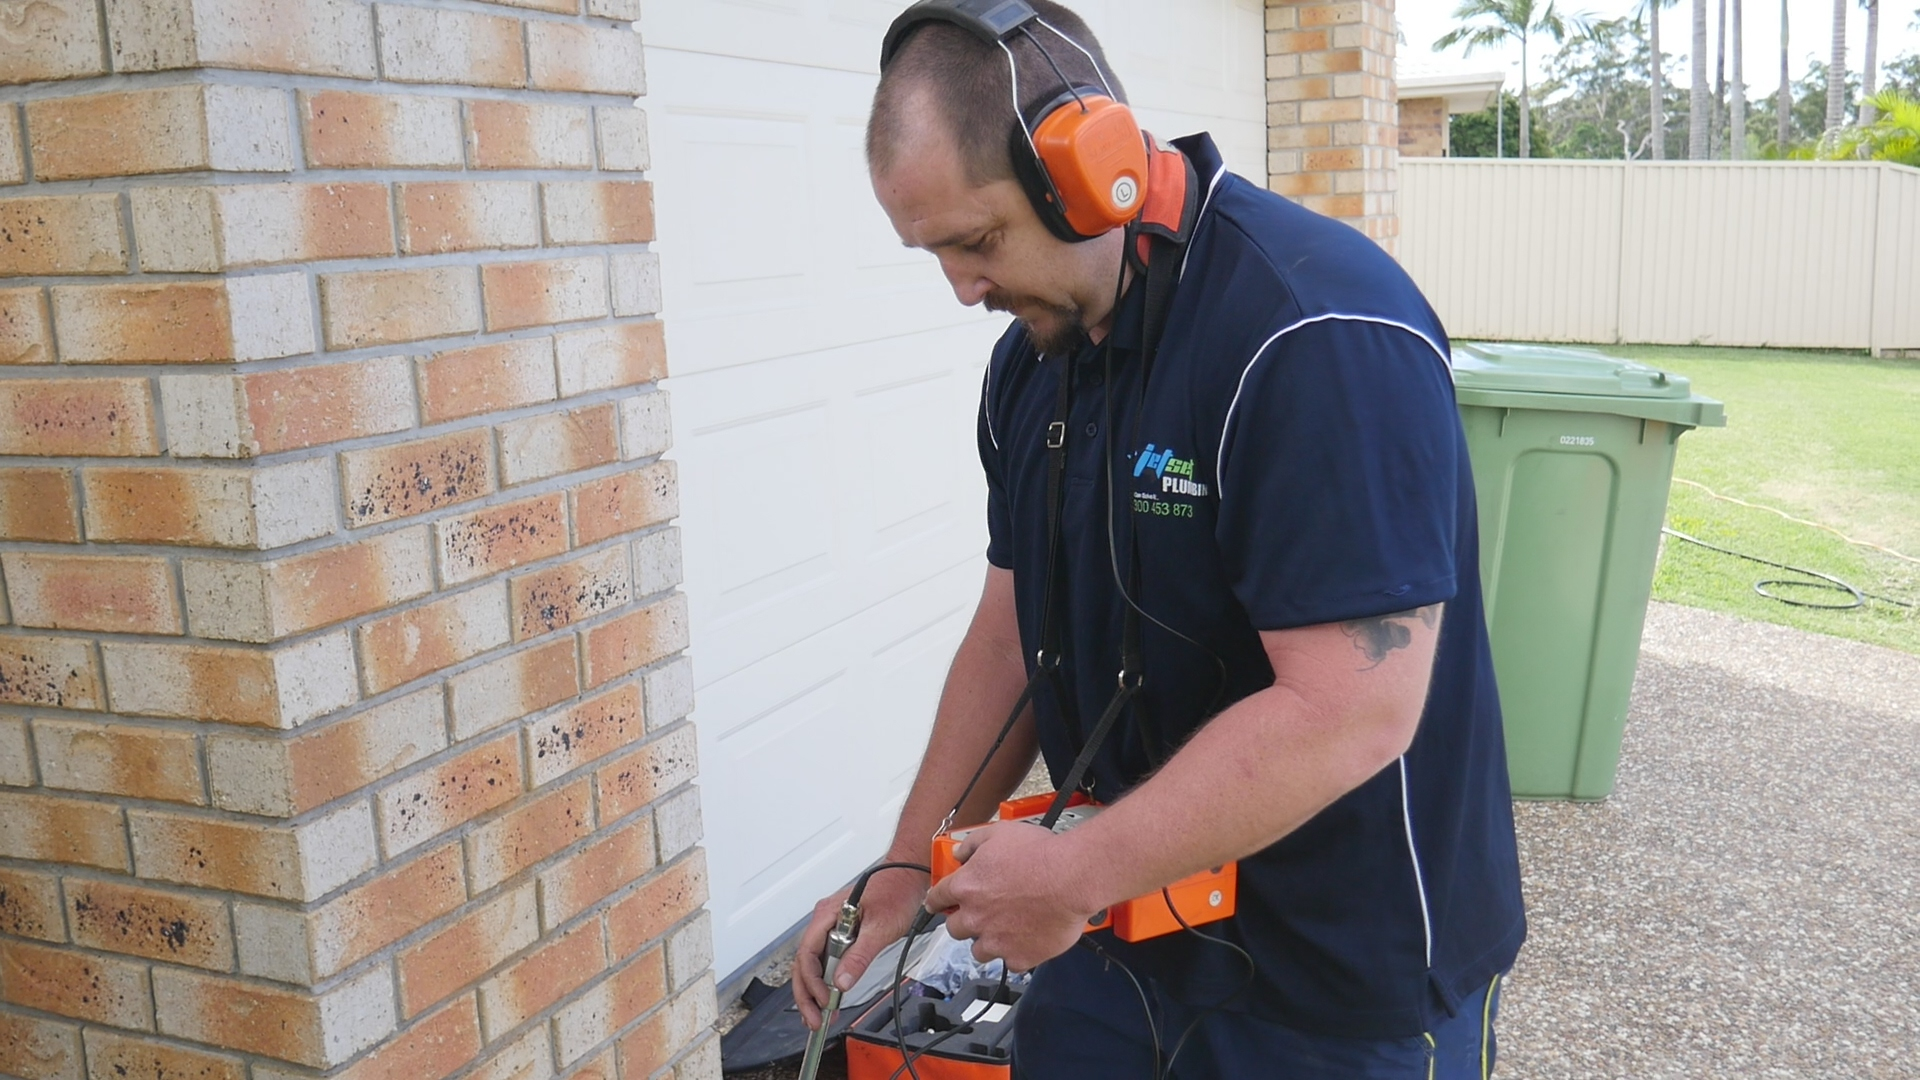 Leak Detection Brisbane checks any leaking taps or toilets